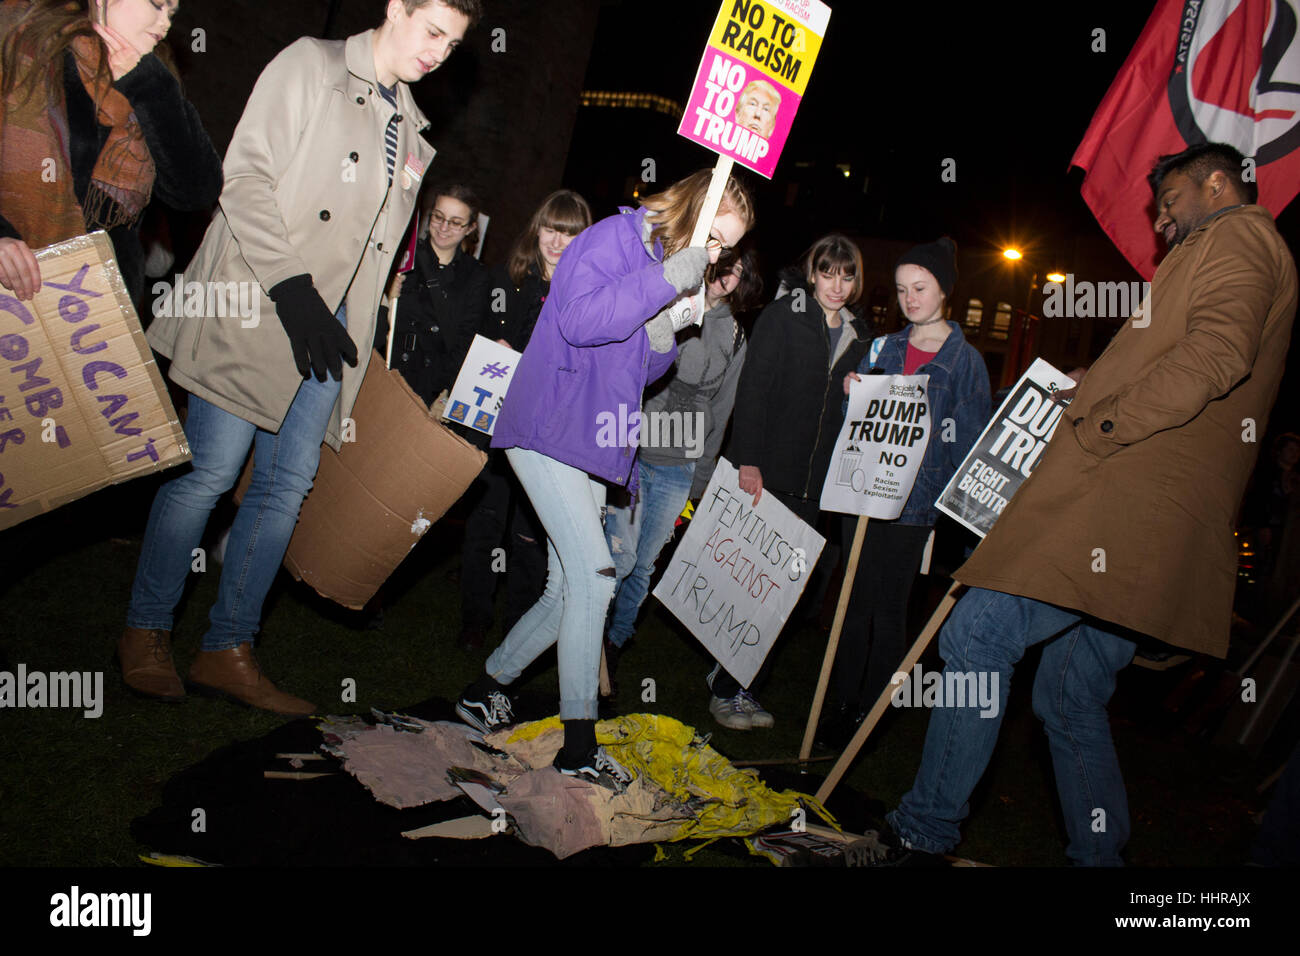 Cardiff, UK. 20th January, 2017. Protesters outside of Cardiff Castle, Wales as part of a demonstration against - Stock Image